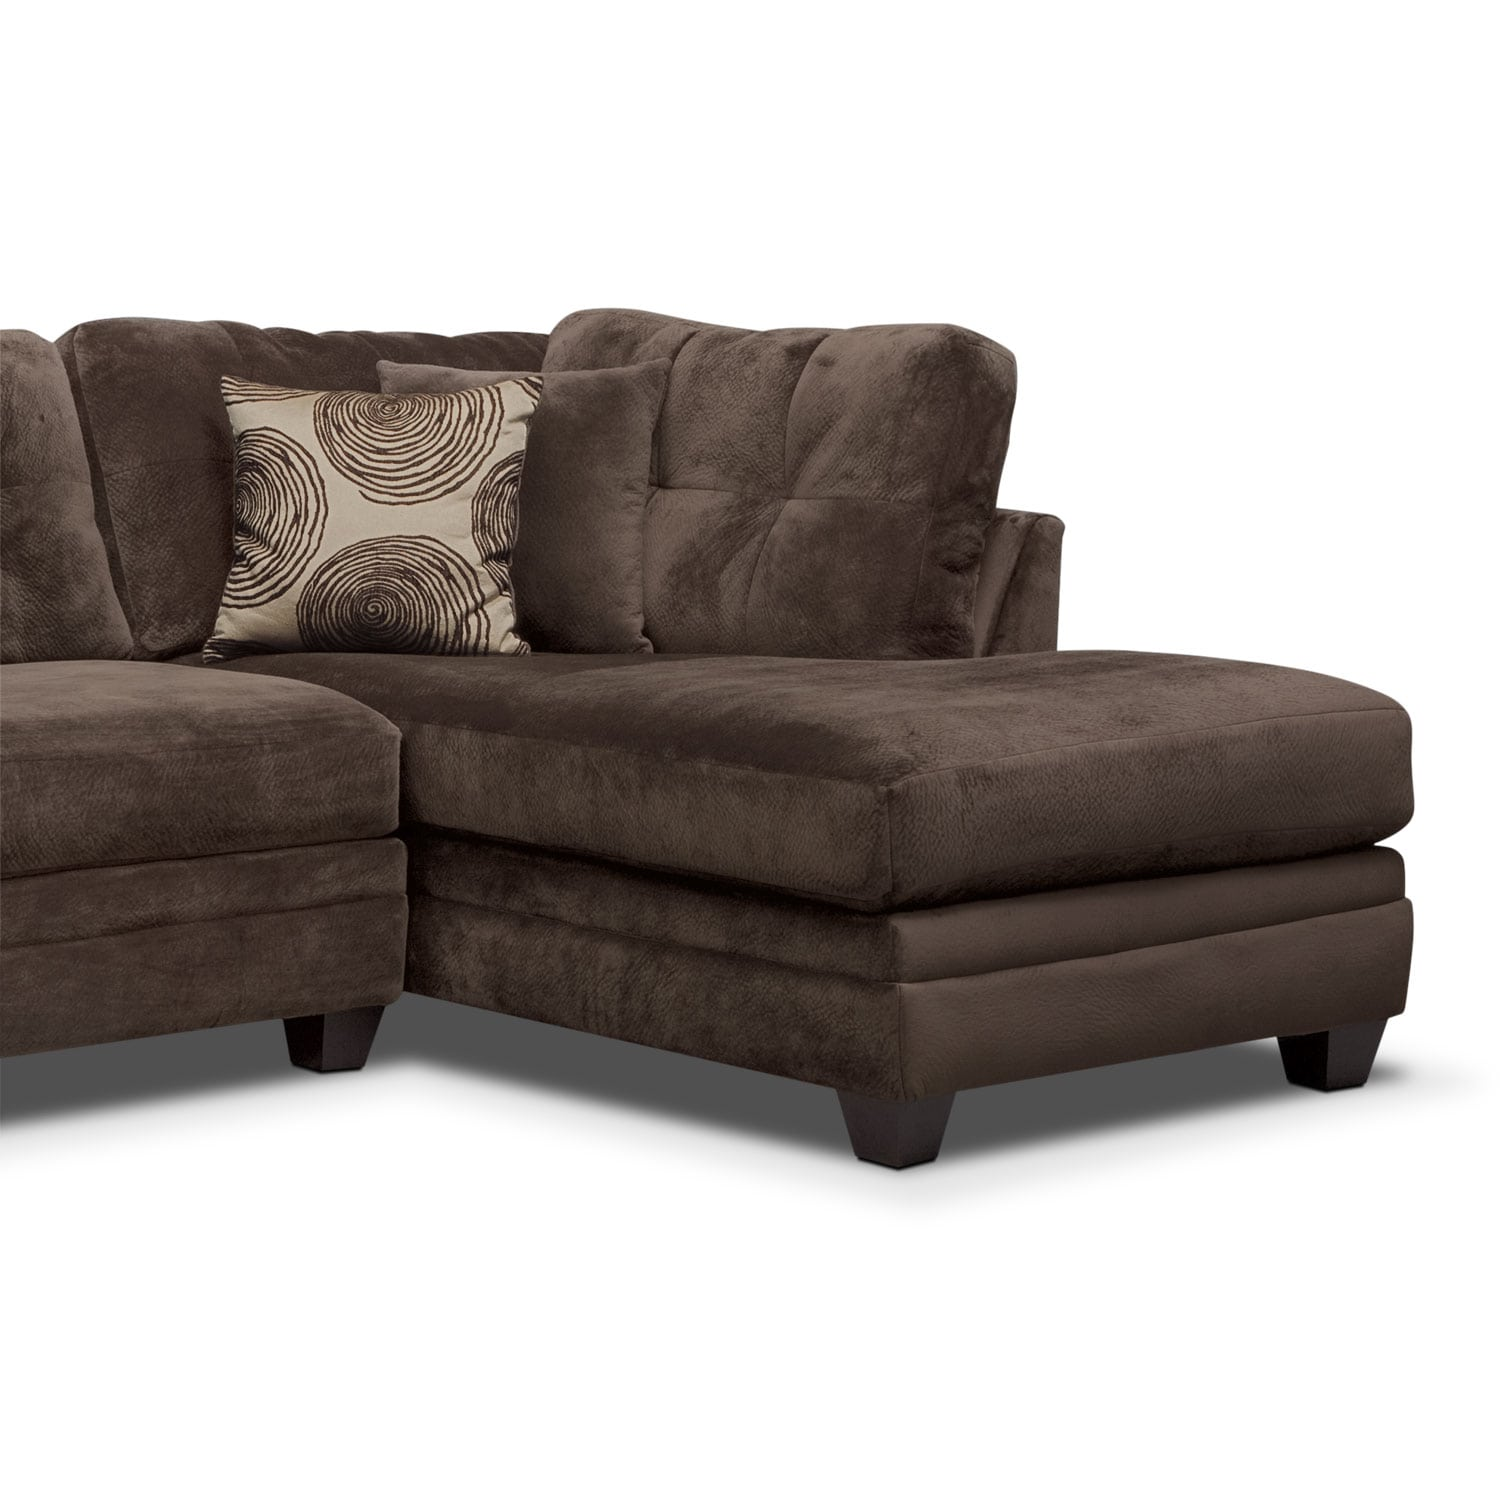 Cordelle 2 Piece Right Facing Chaise Sectional   Chocolate By Factory Outlet